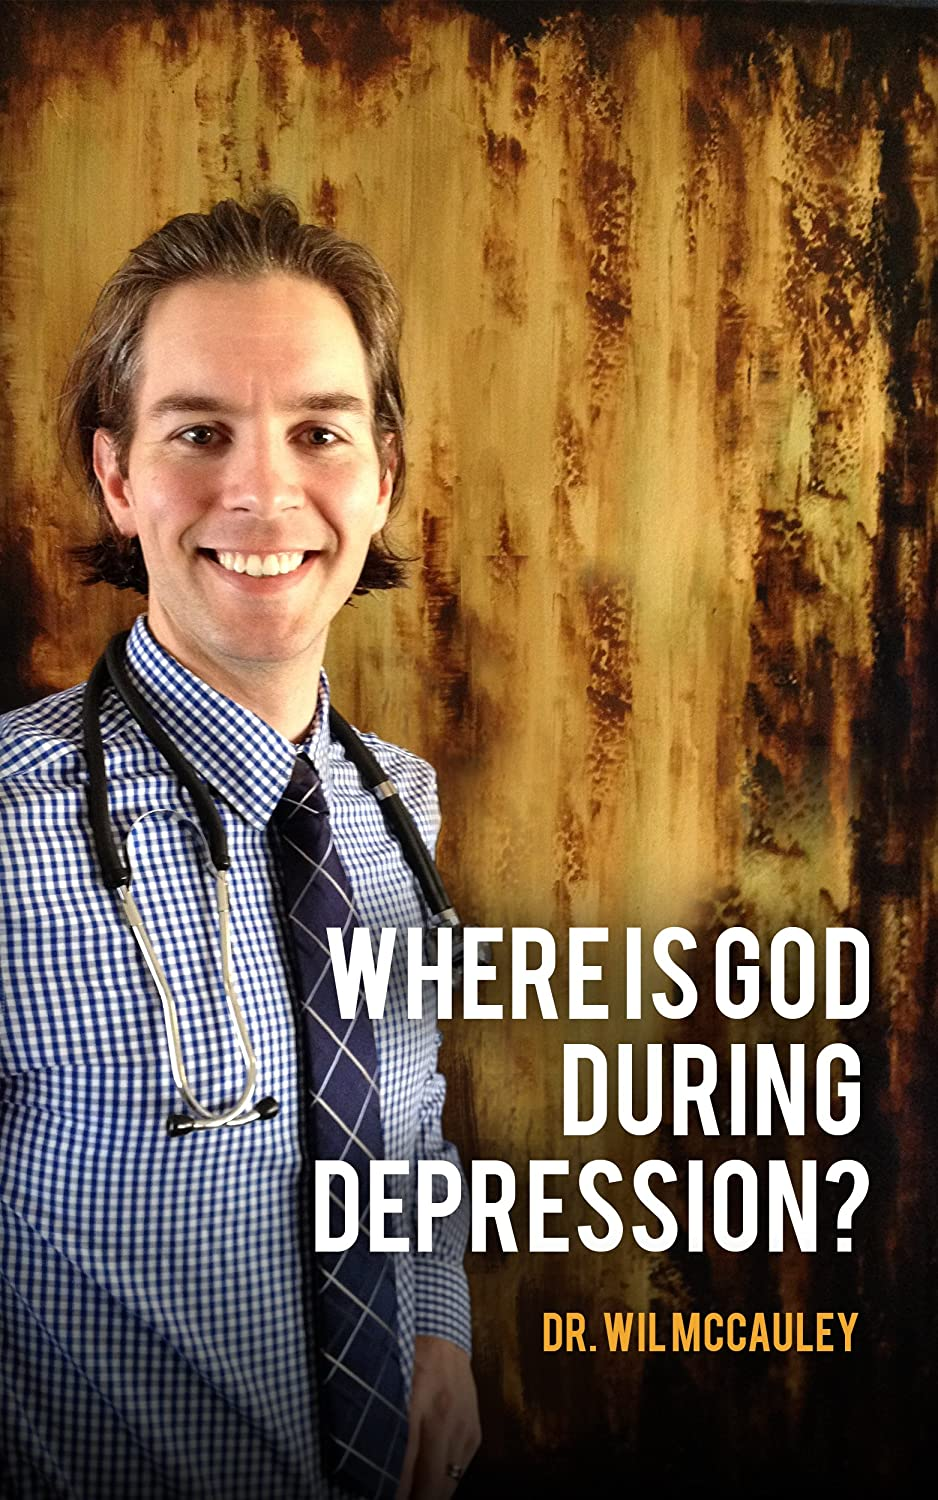 Where Is God During Depression?